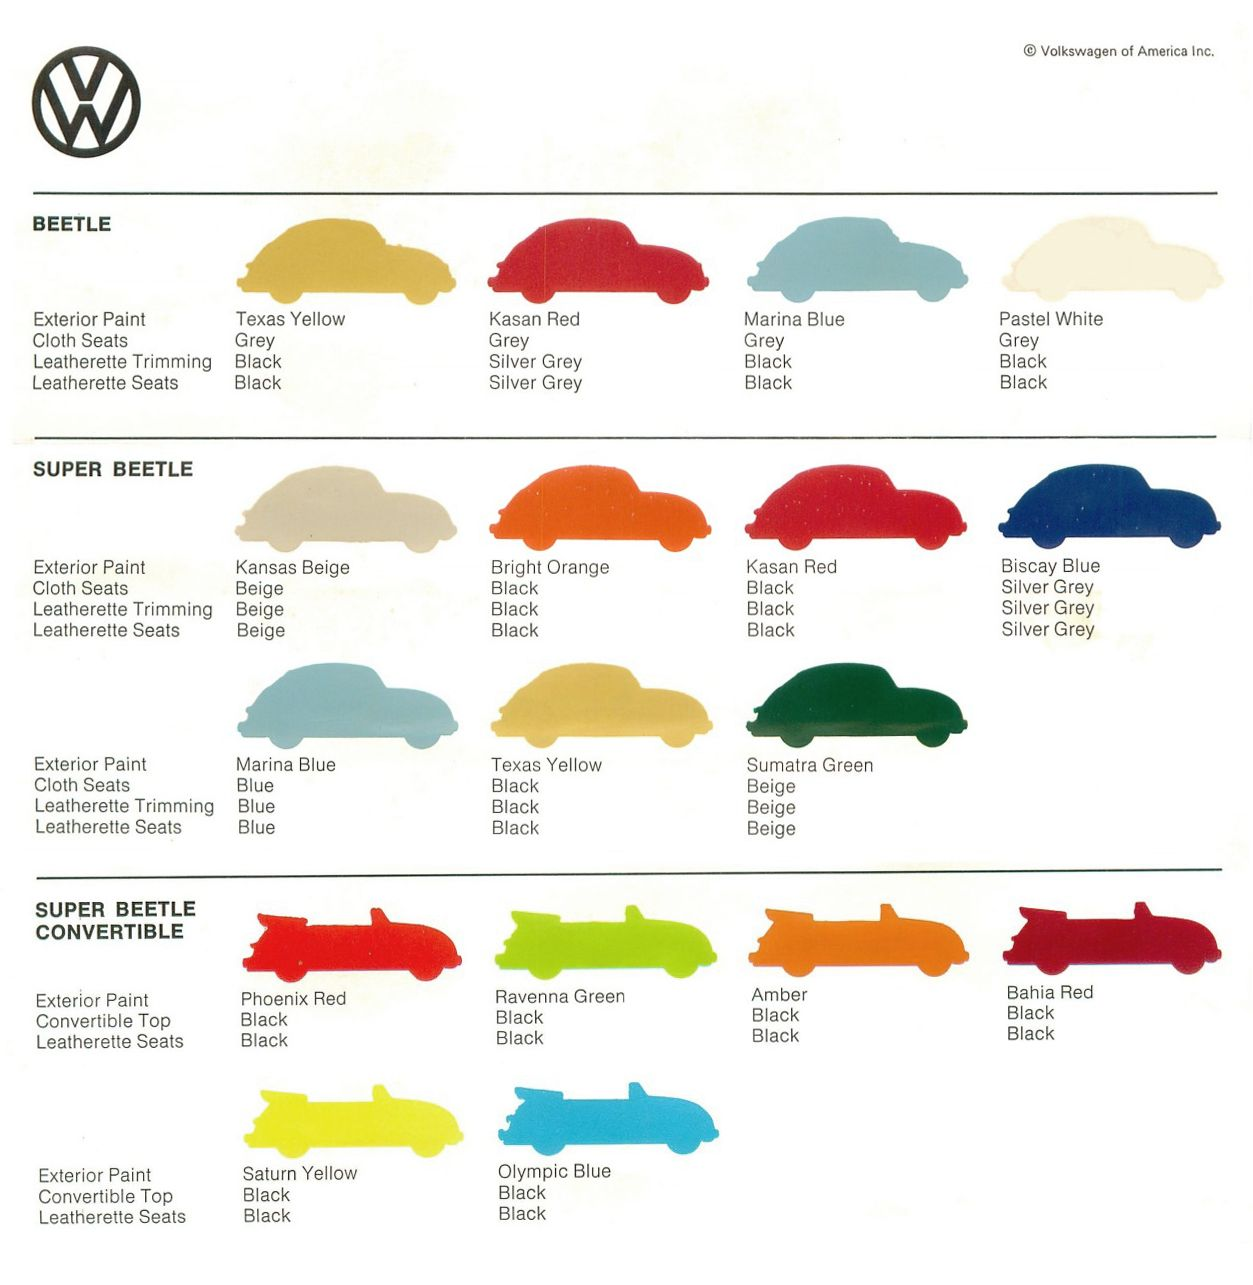 small resolution of vw beetle color sheet 1973 volkswagen of america via thesamba